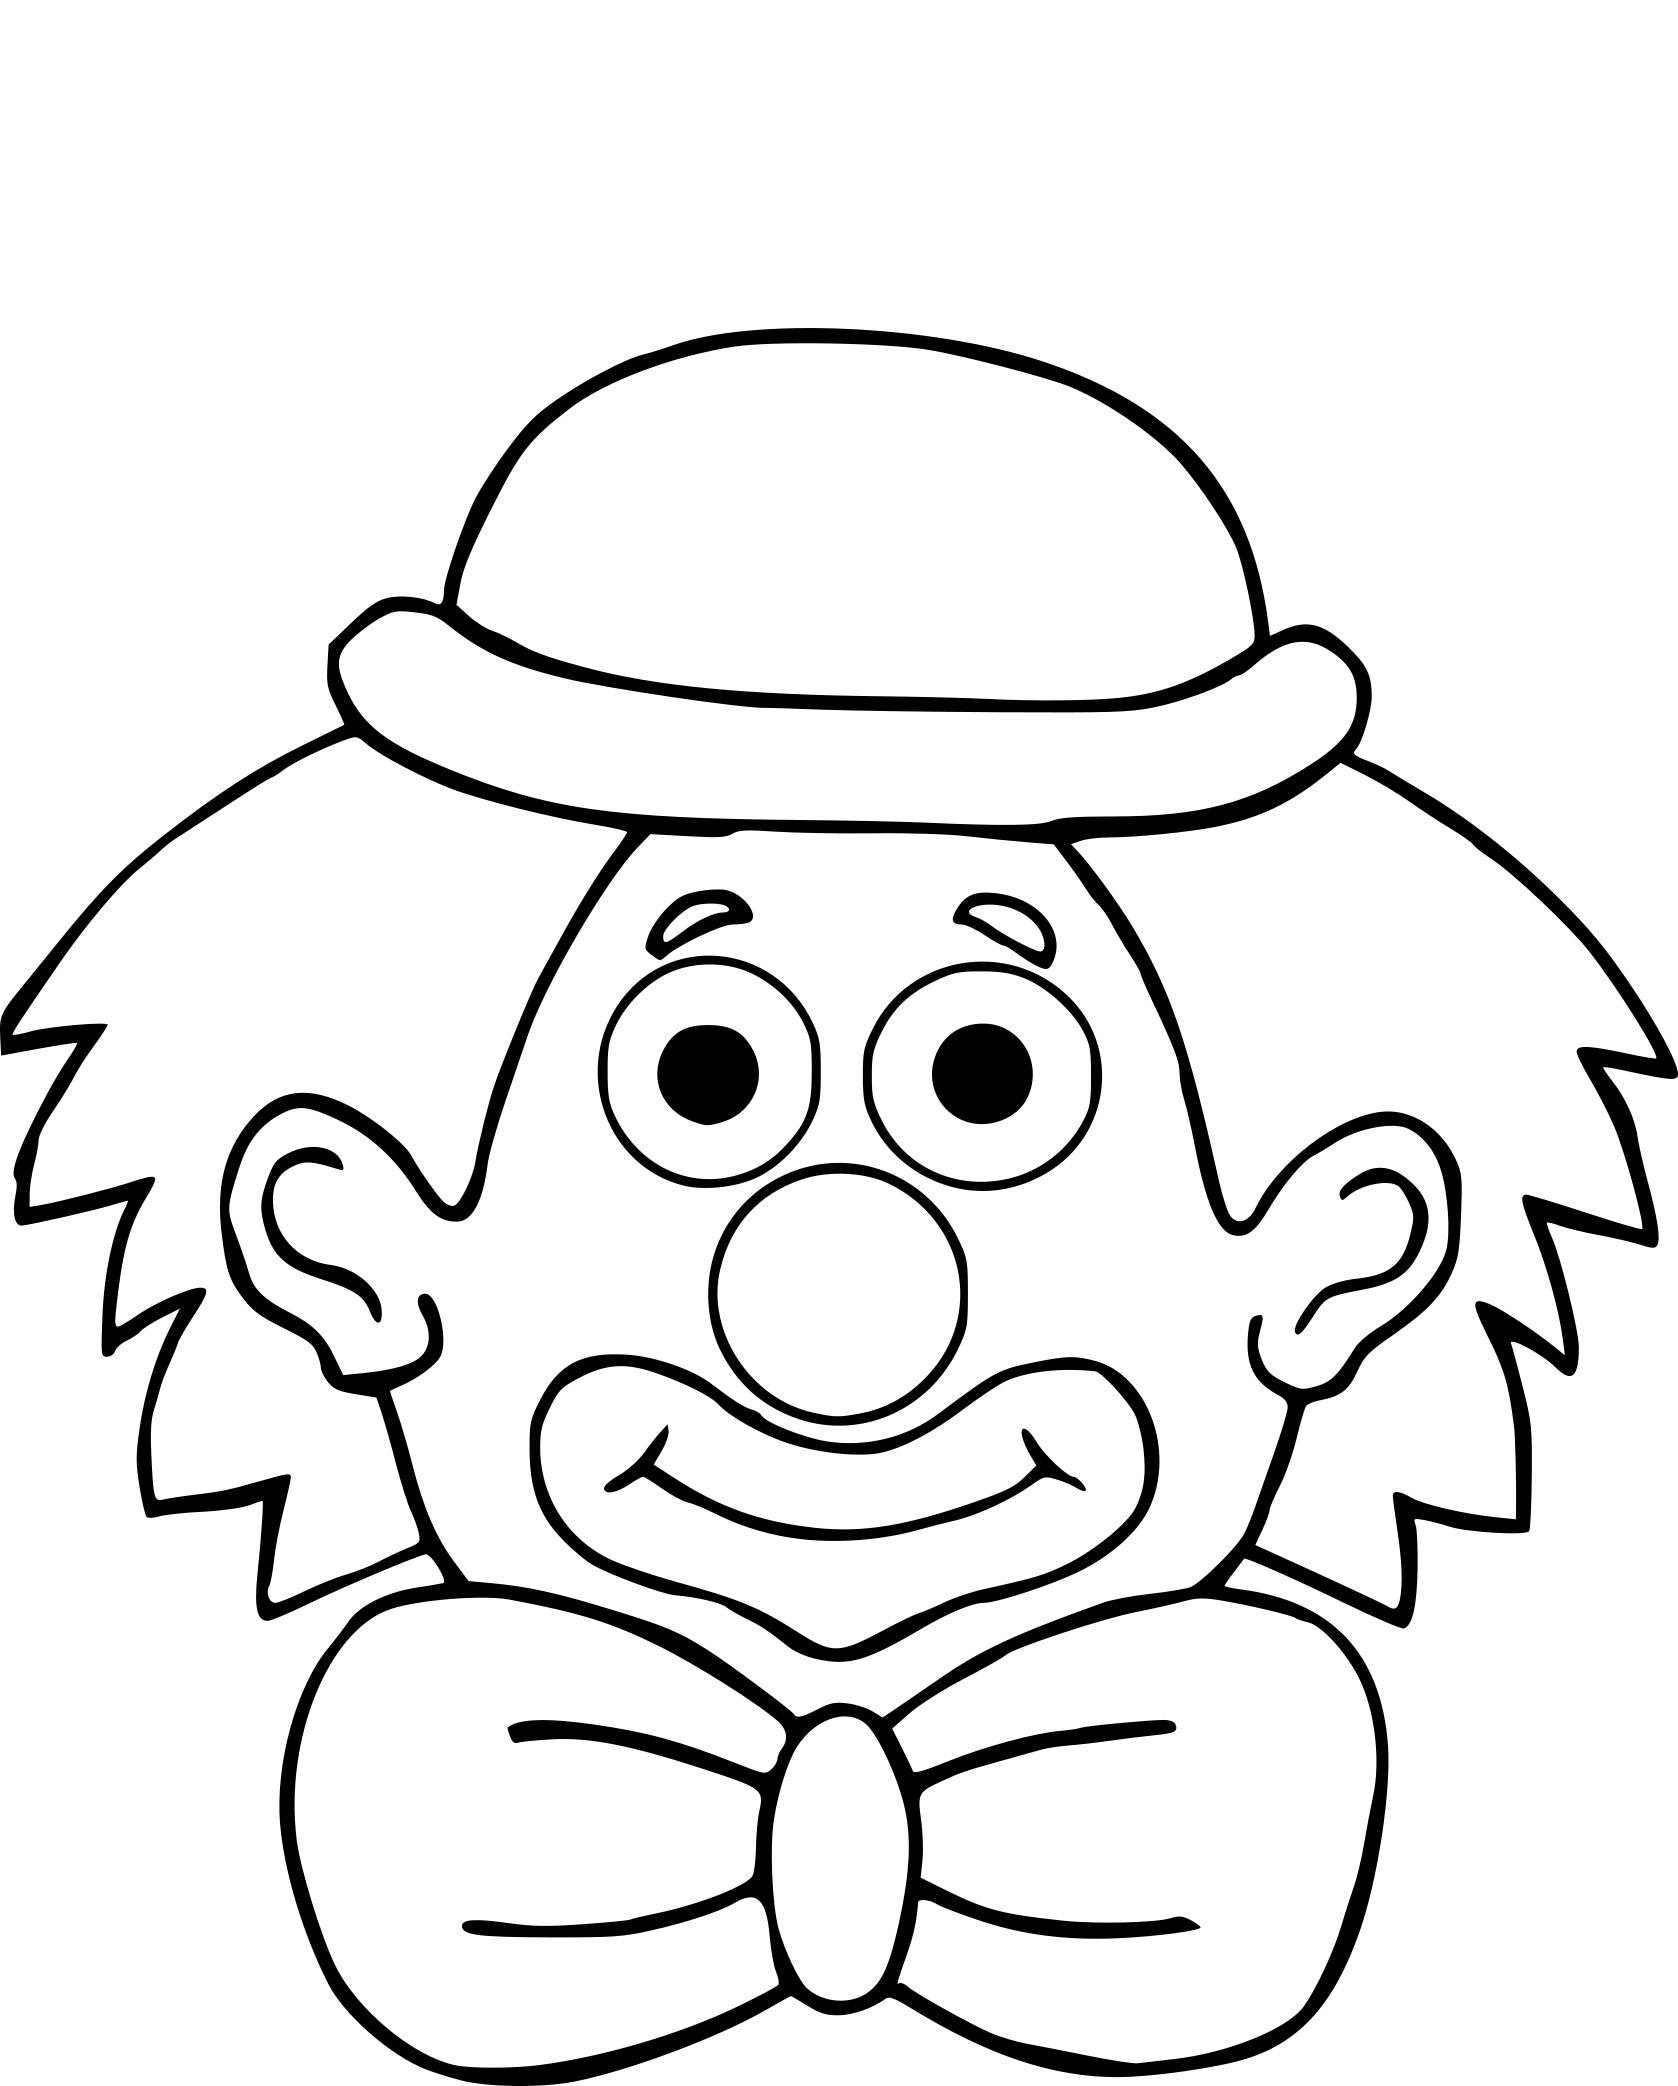 Coloriage Clown Drole.Awesome Coloriage Tete De Clown Unique Coloriage Tete De